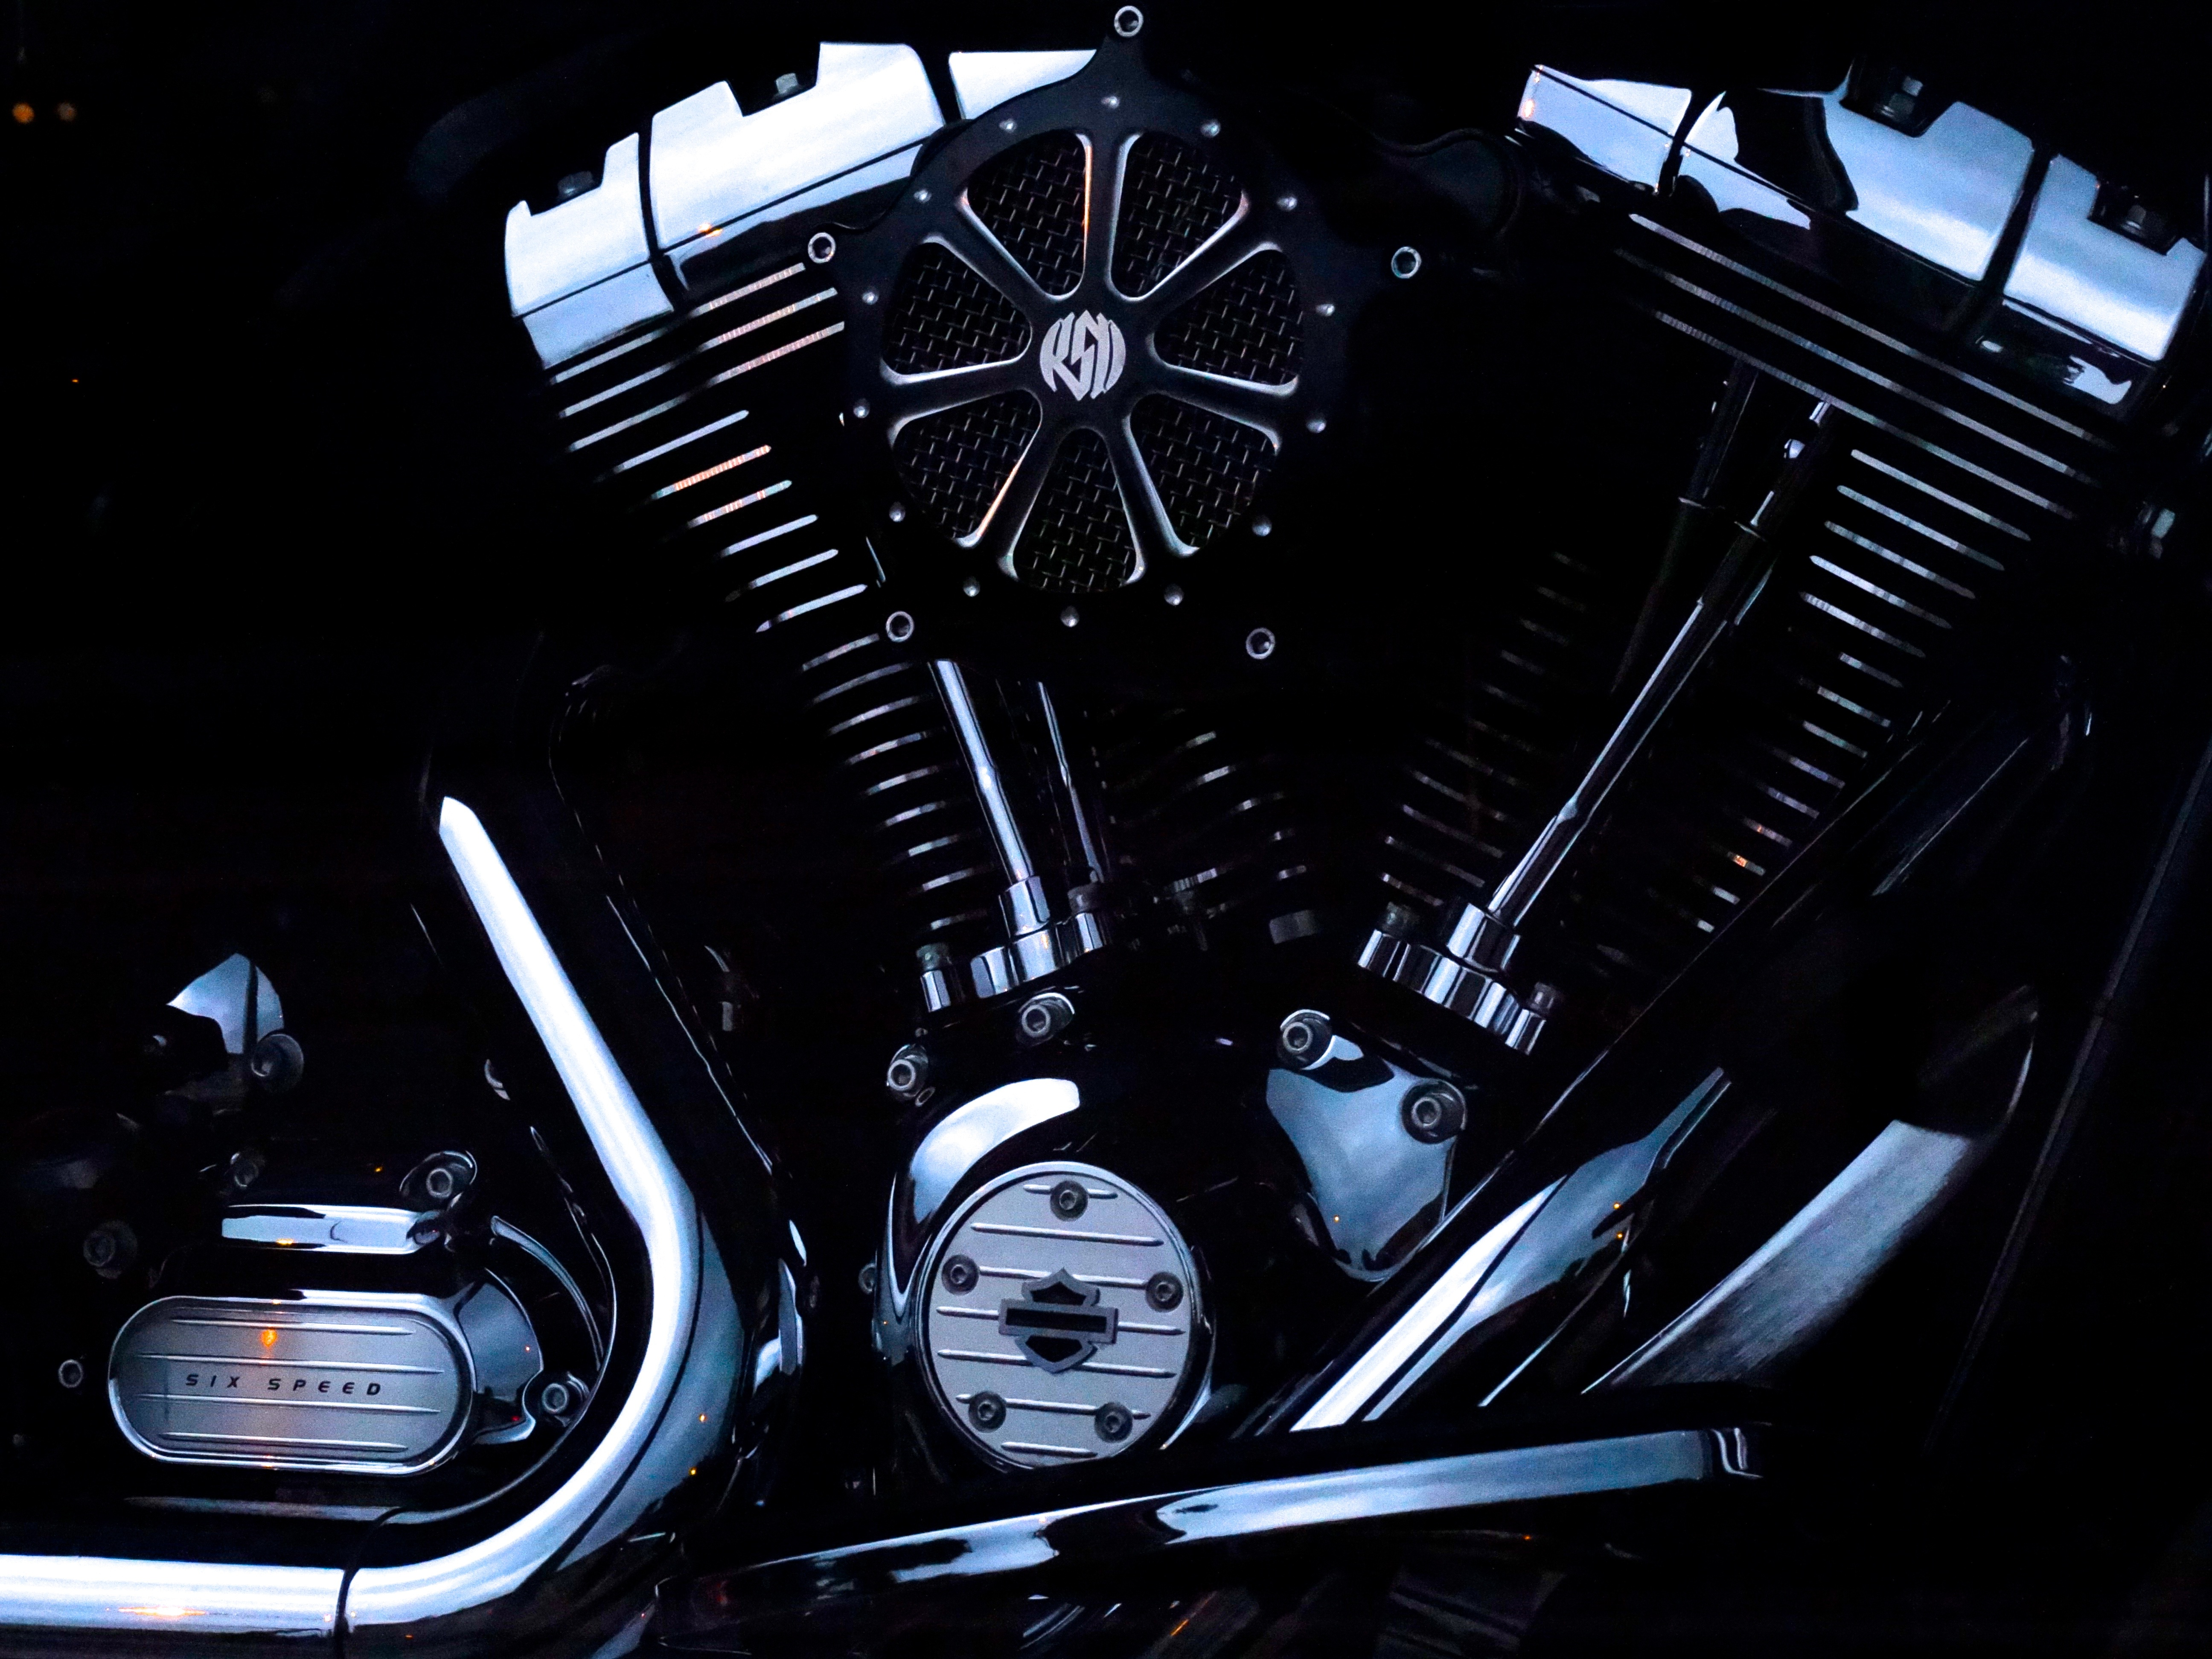 Full Hd Car Wallpaper Free Download Motorcycle Engine 183 Free Stock Photo